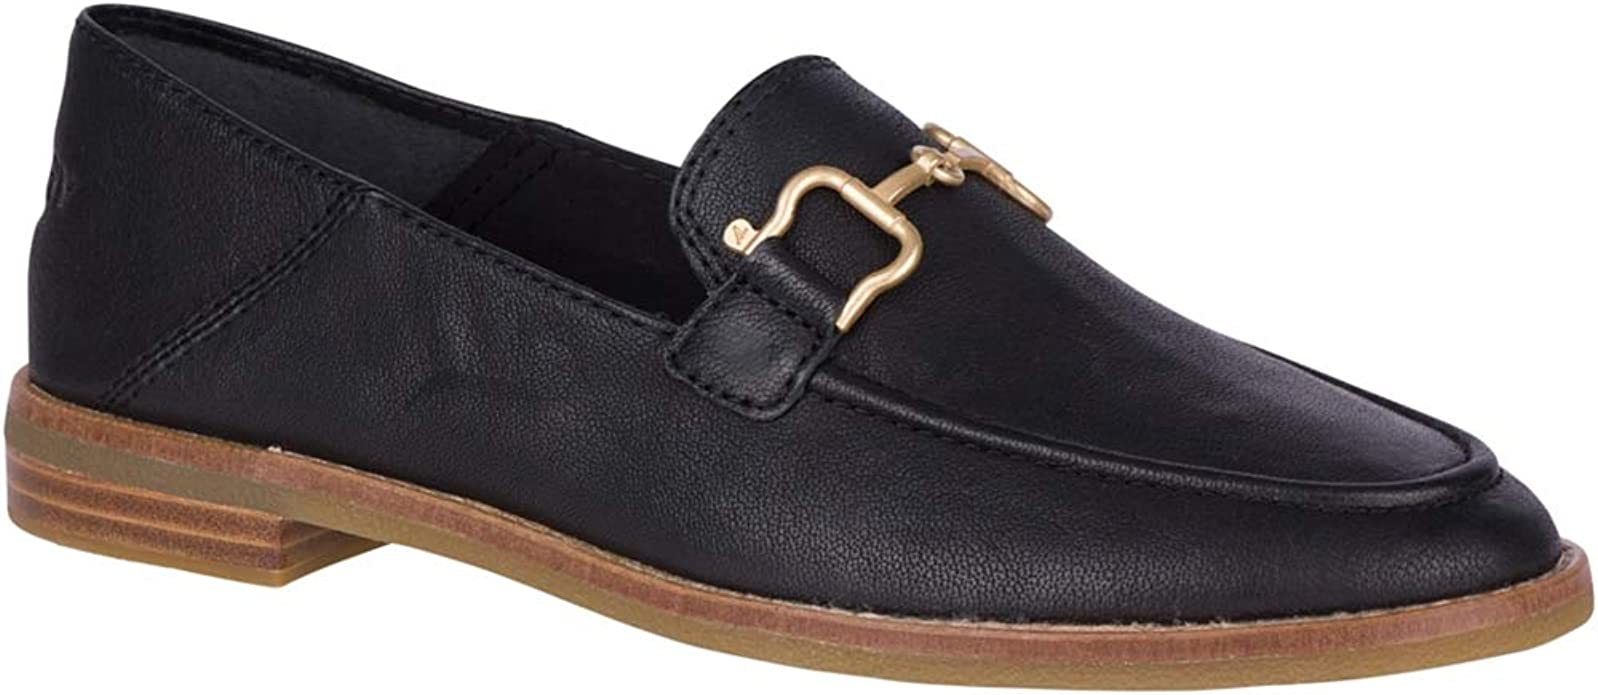 Sperry Top-Sider Seaport Buckle Leather